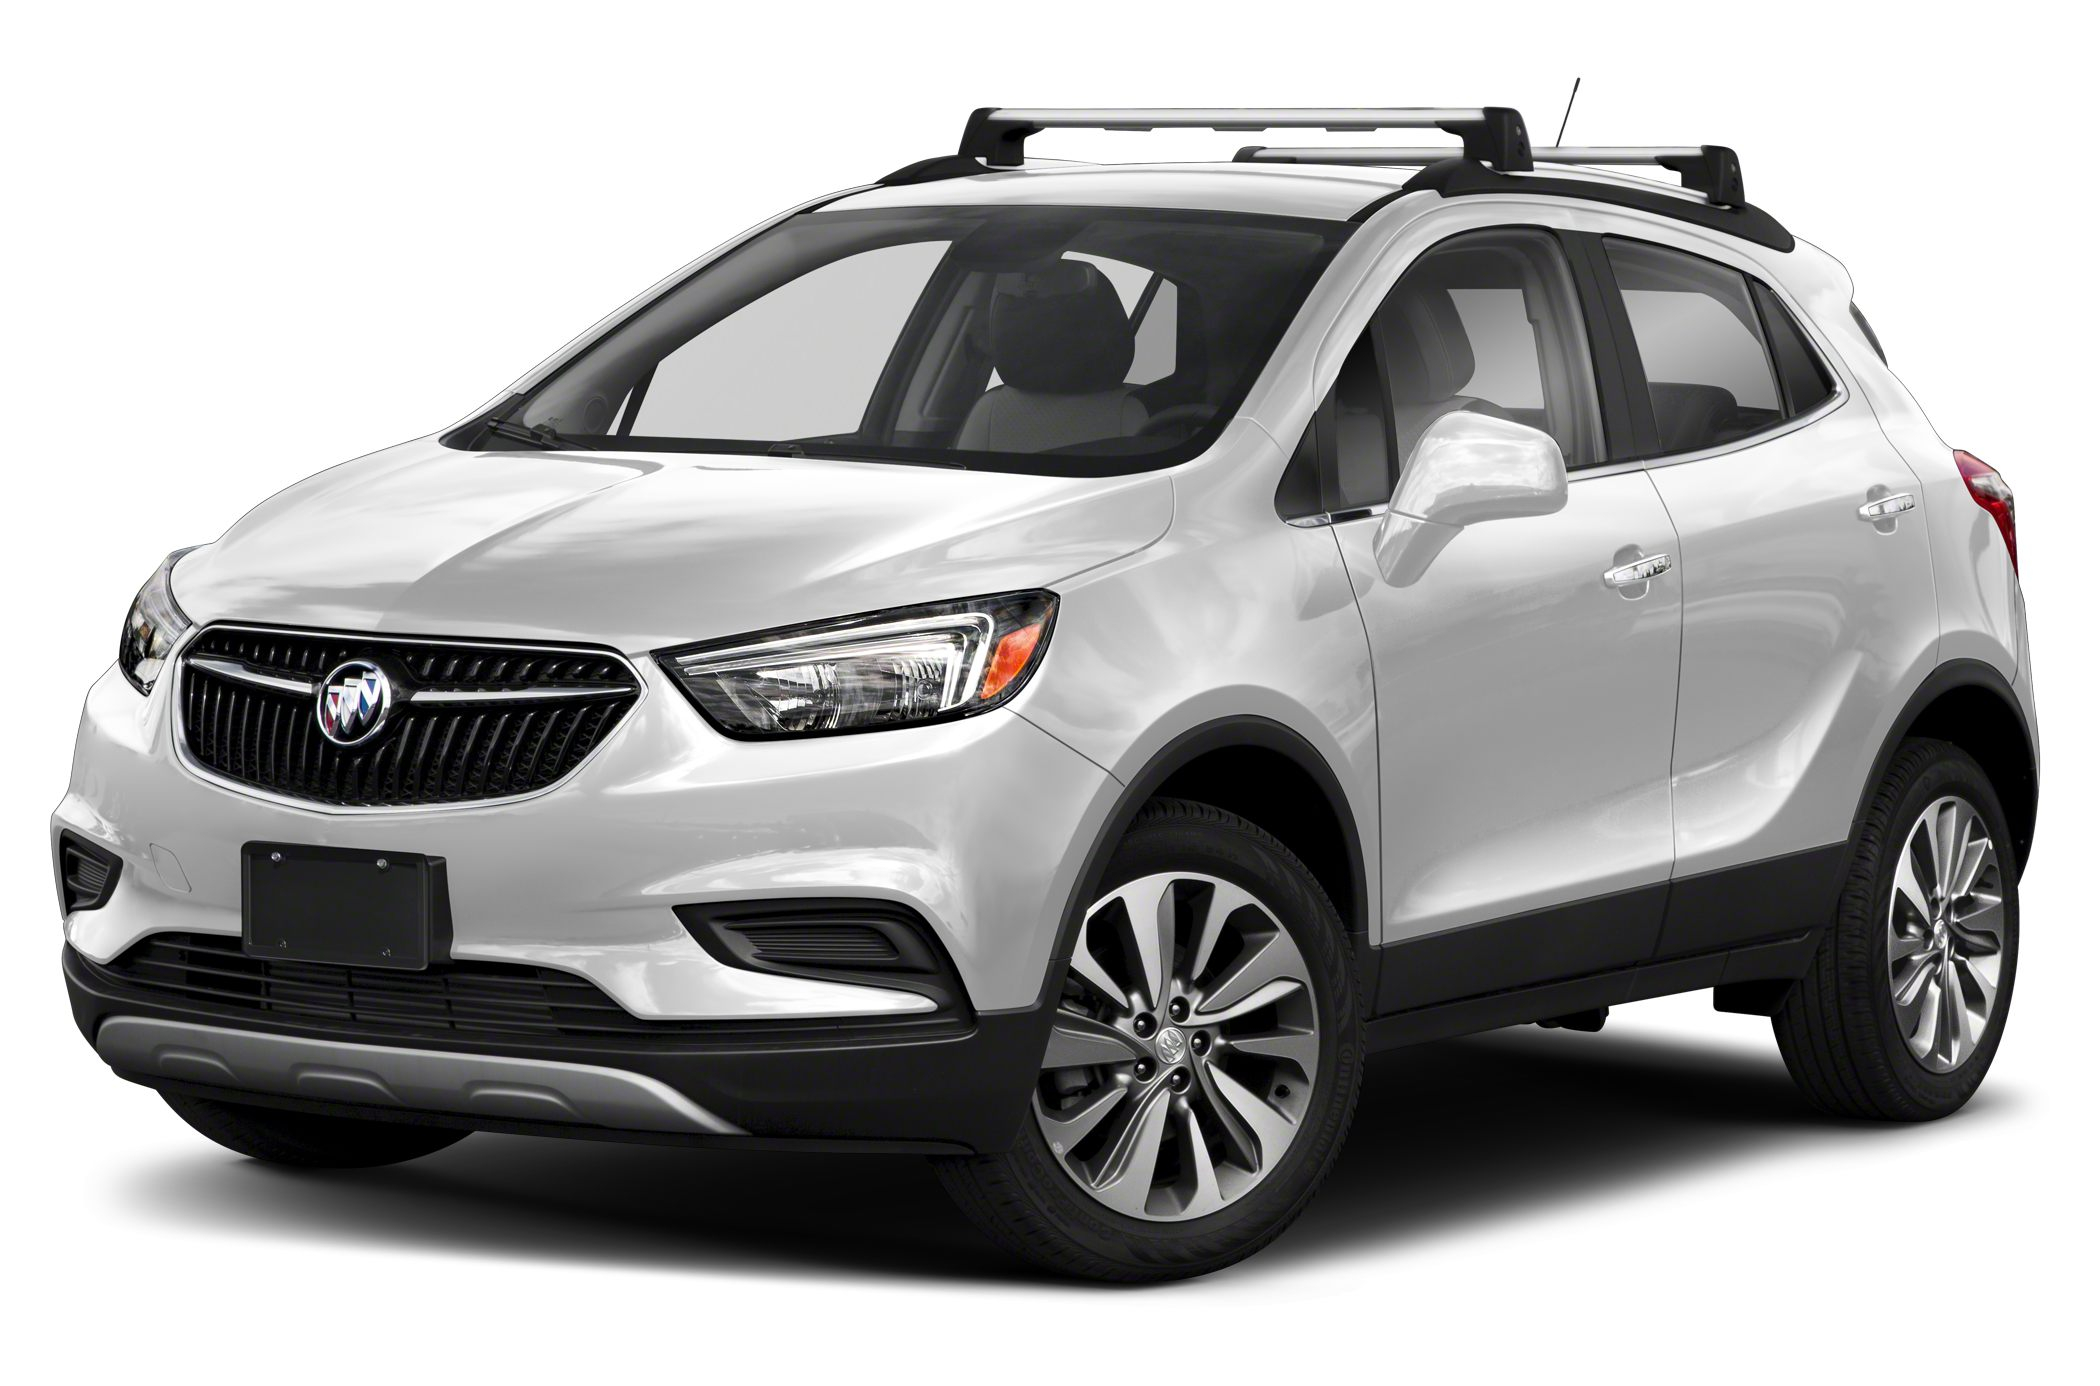 2021 Buick Encore Base Front-Wheel Drive Specs And Prices New 2021 Buick Encore Essence Price, Interior, Dimensions